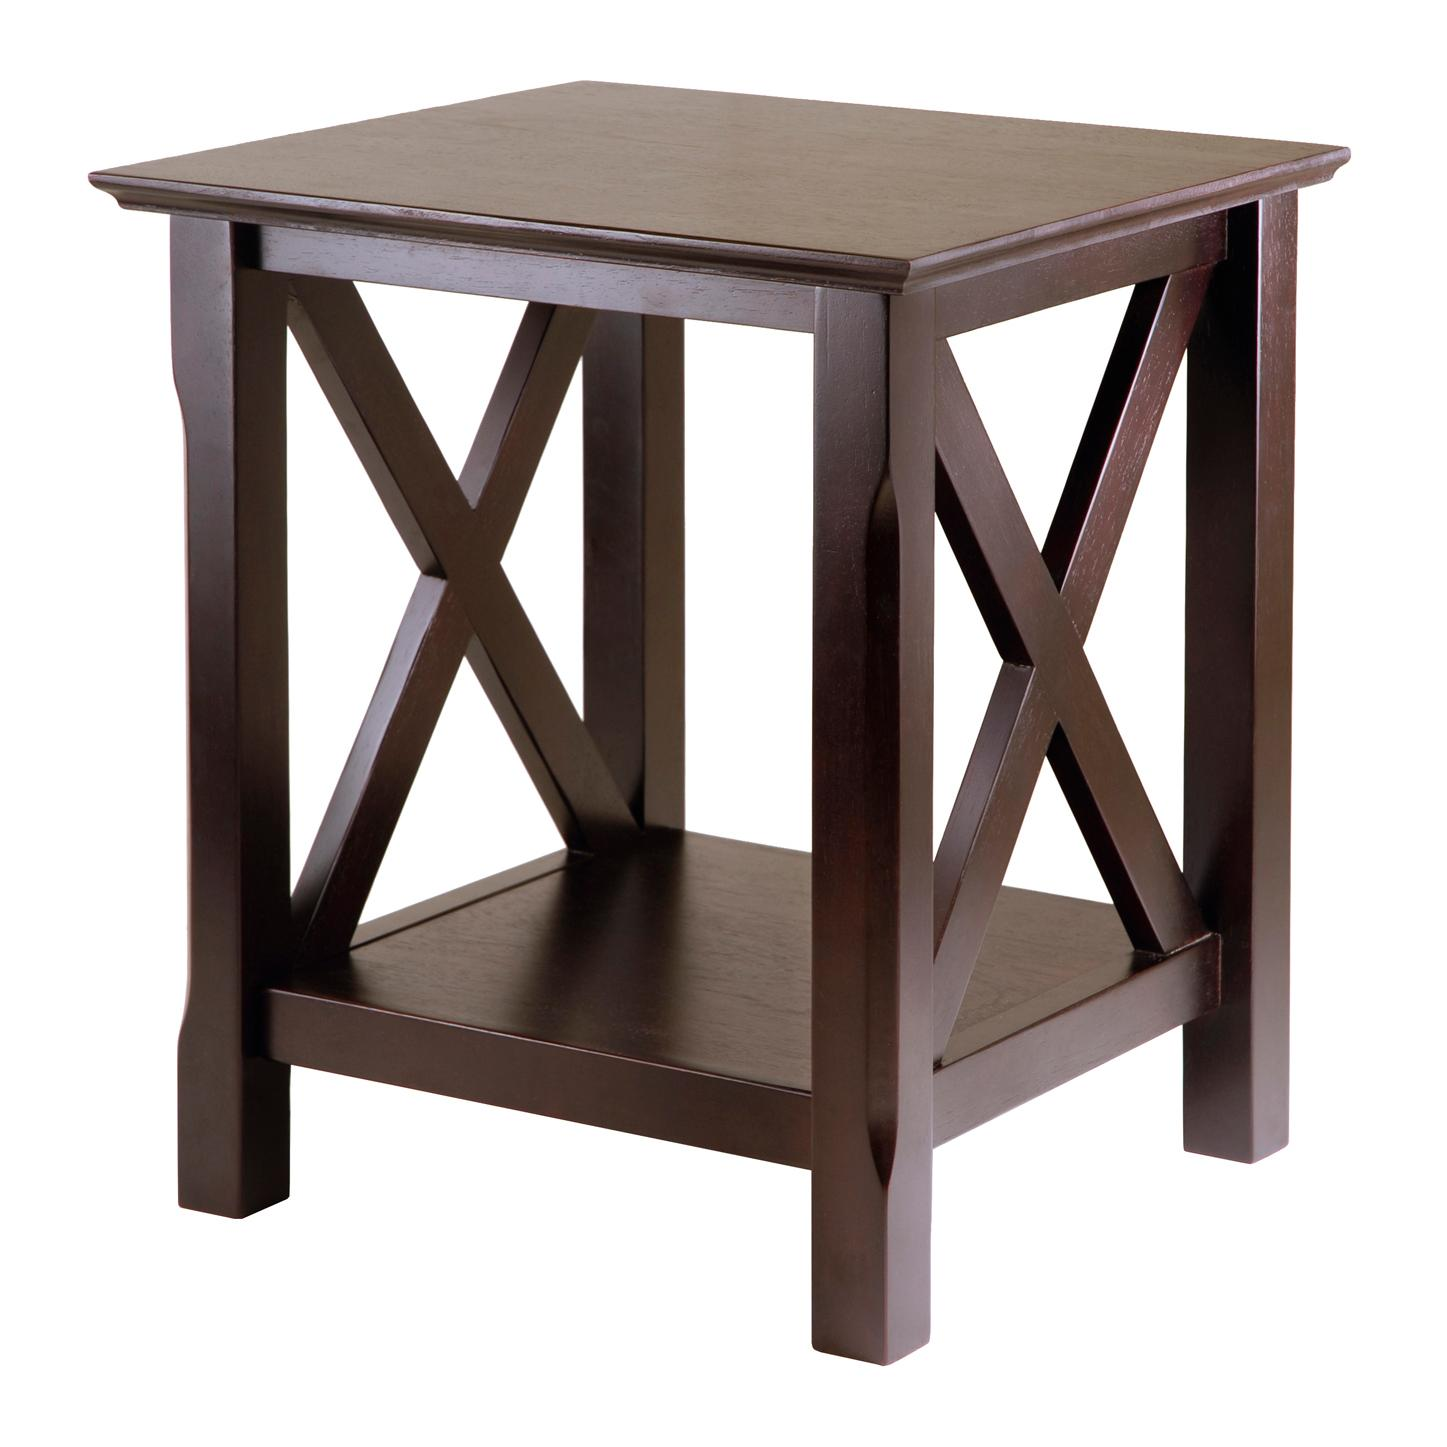 winsome wood xola end table home kitchen from the manufacturer small oval coffee contemporary glass side tables for living room chair nightstand kmart lawn and garden clearance